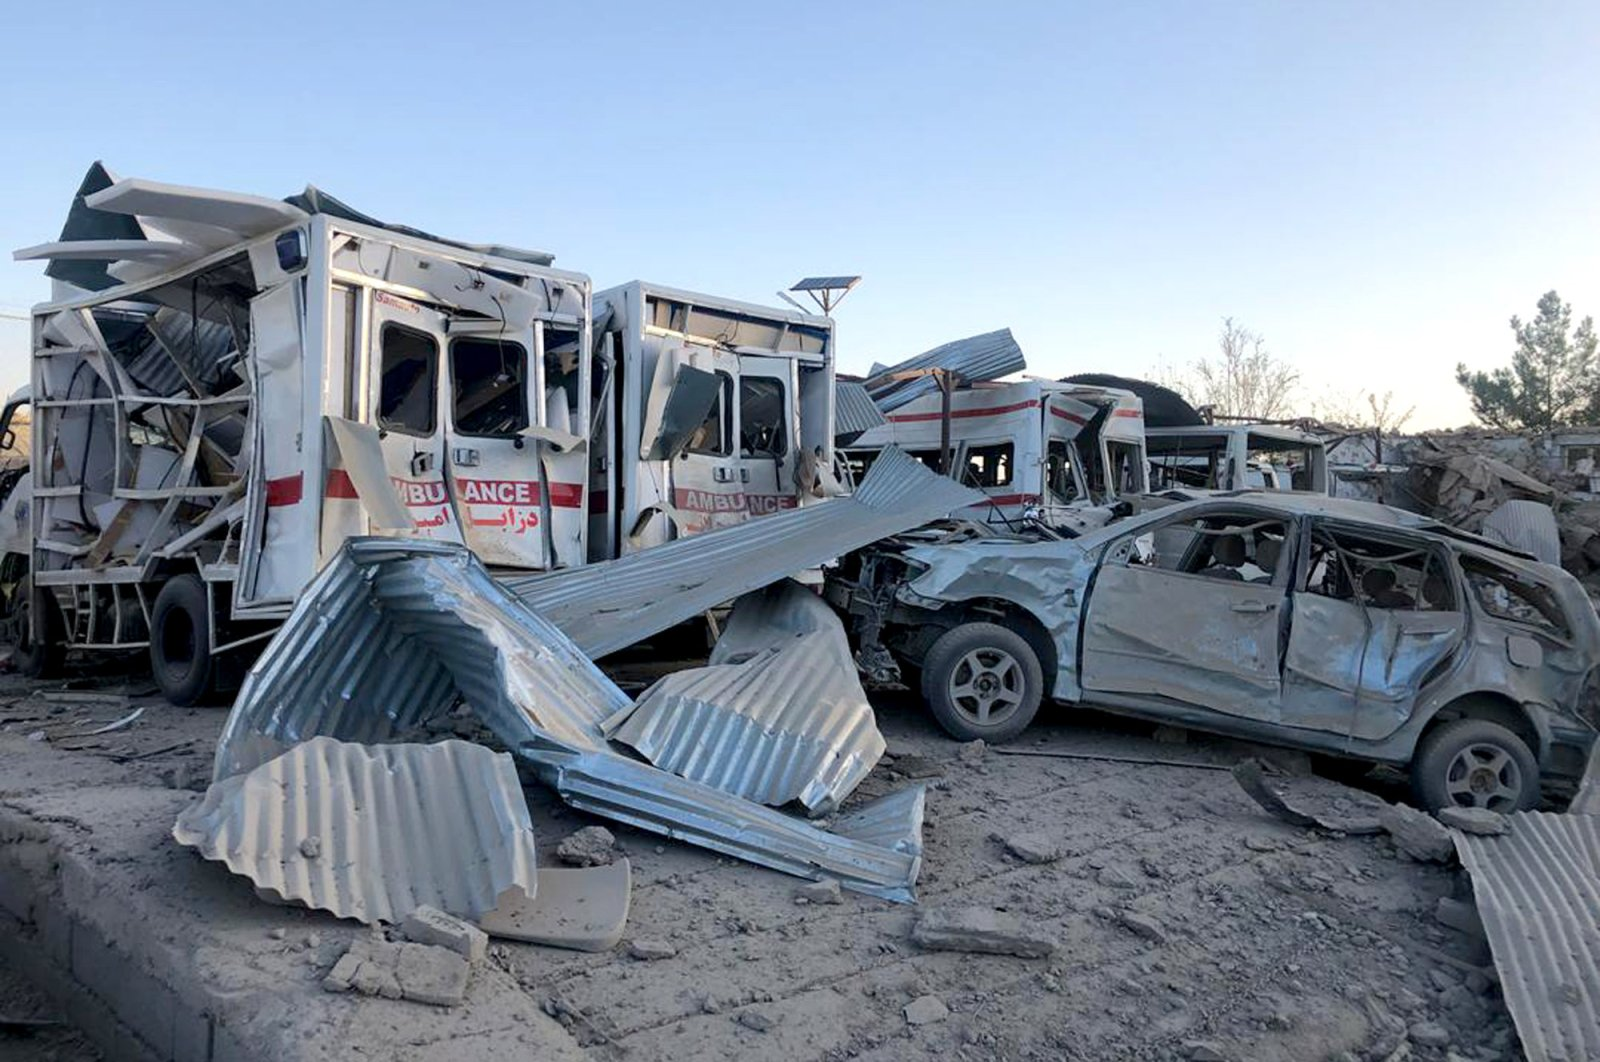 Damaged cars at the scene of a suicide attack in Zabul, Afghanistan, Sept. 19, 2019. (AP Photo)